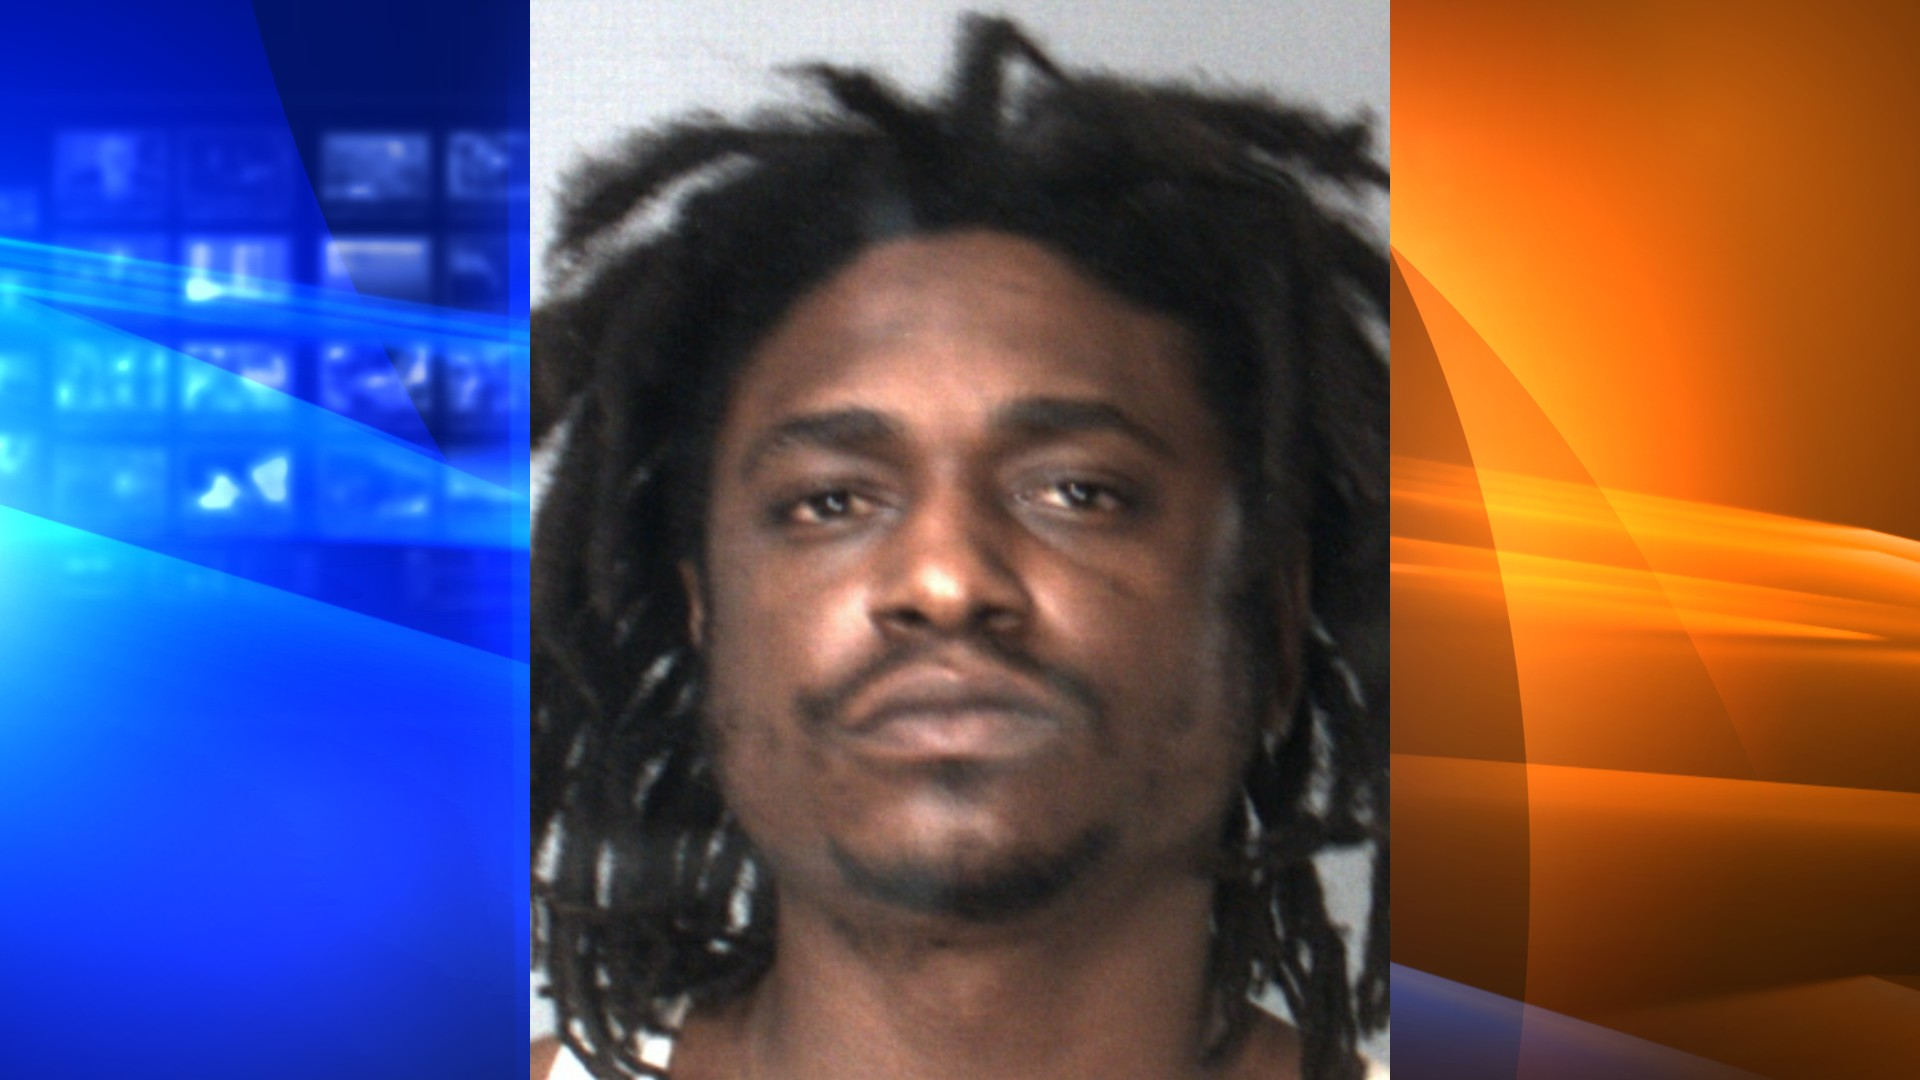 Davon Sheppard is seen in a booking photo released by the San Bernardino County Sheriff's Department.